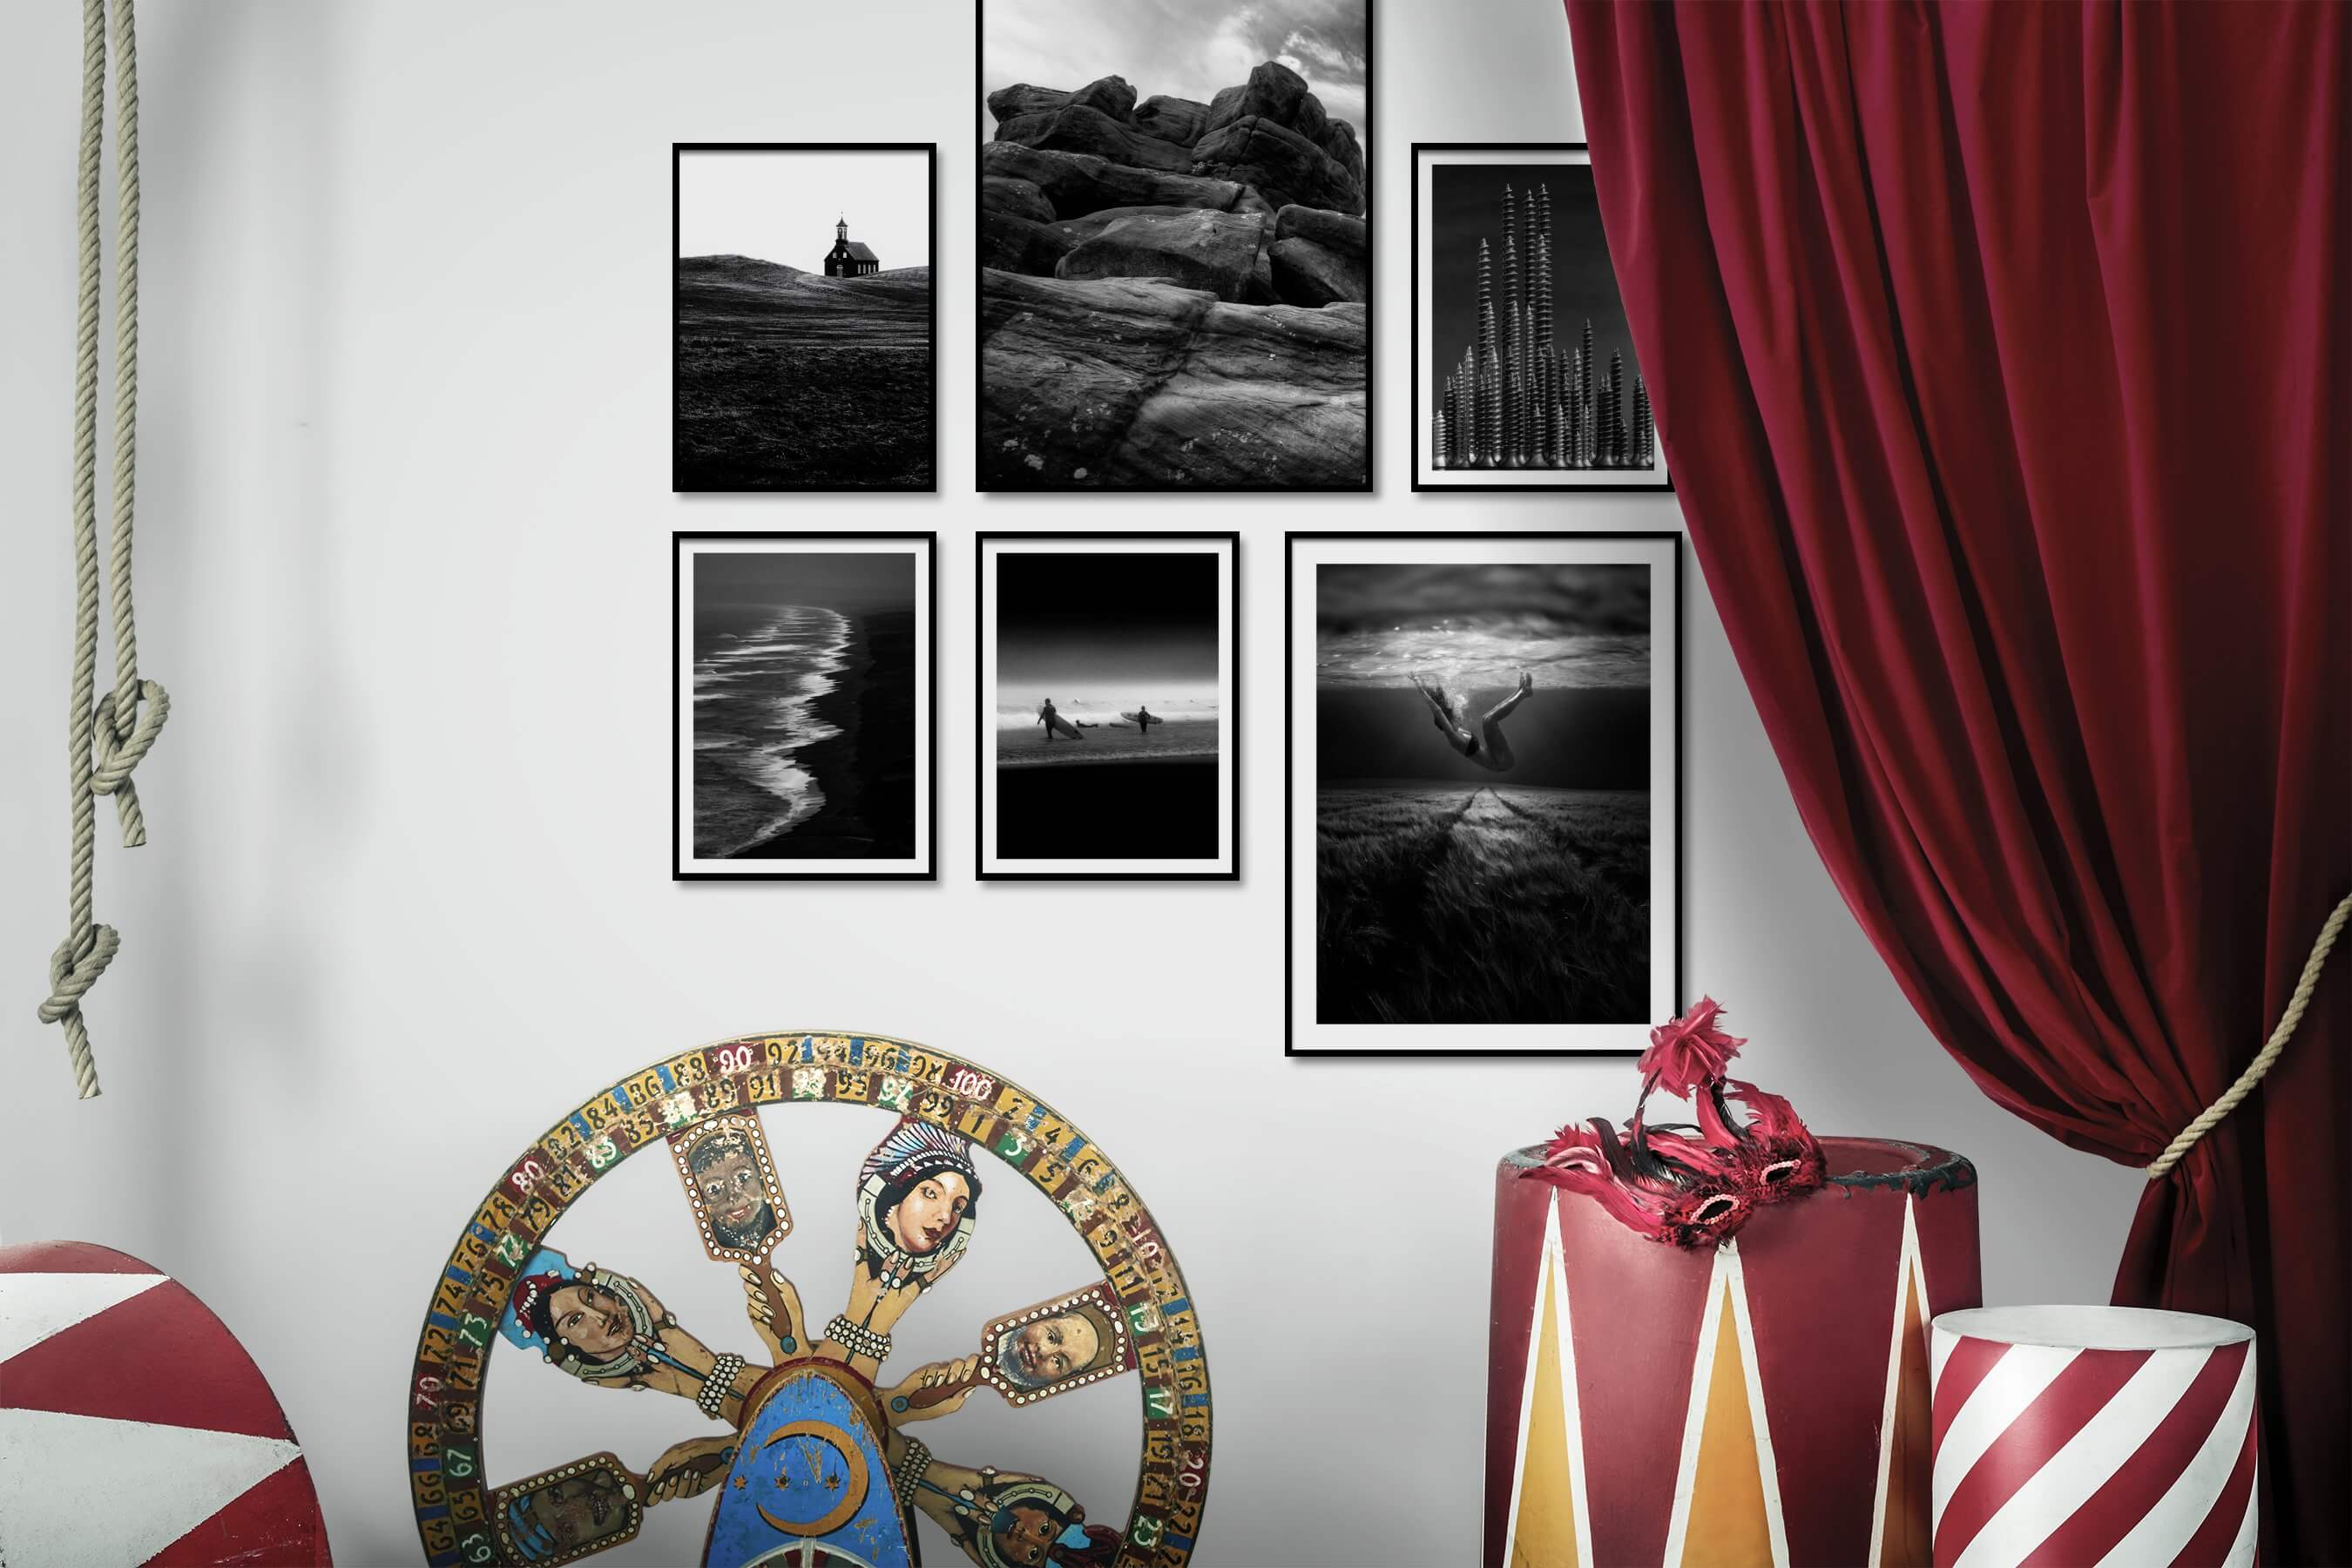 Gallery wall idea with six framed pictures arranged on a wall depicting Black & White, Country Life, For the Moderate, Nature, Beach & Water, Dark Tones, City Life, and Americana